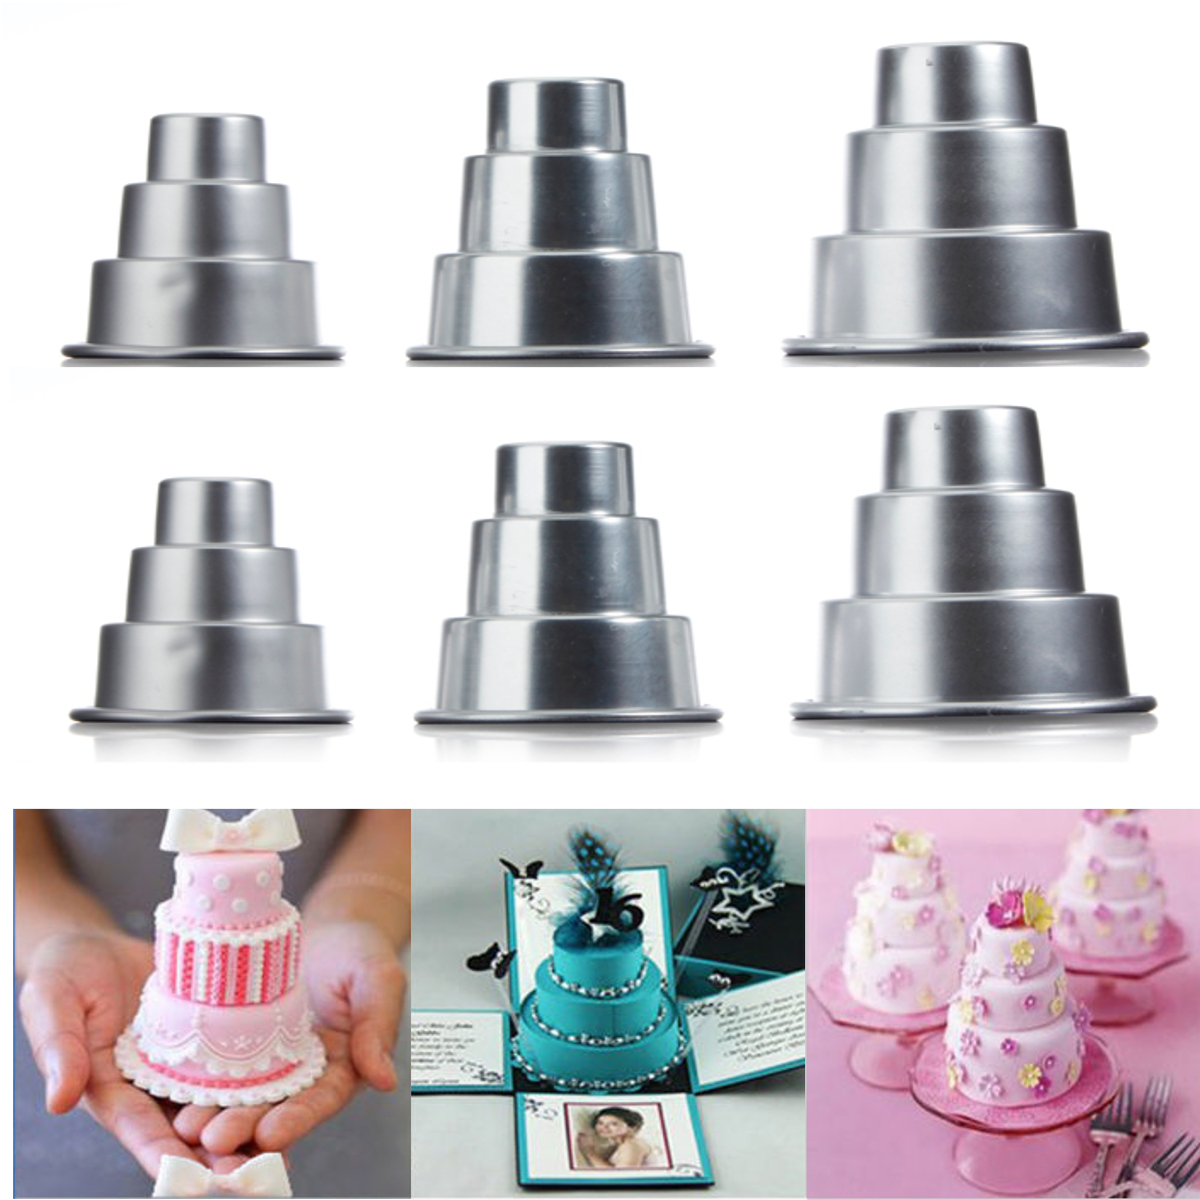 6x S/M/L Mini 3-Tier Cupcake Pudding Chocolate Cake Baking Mold Baking Pan Mould